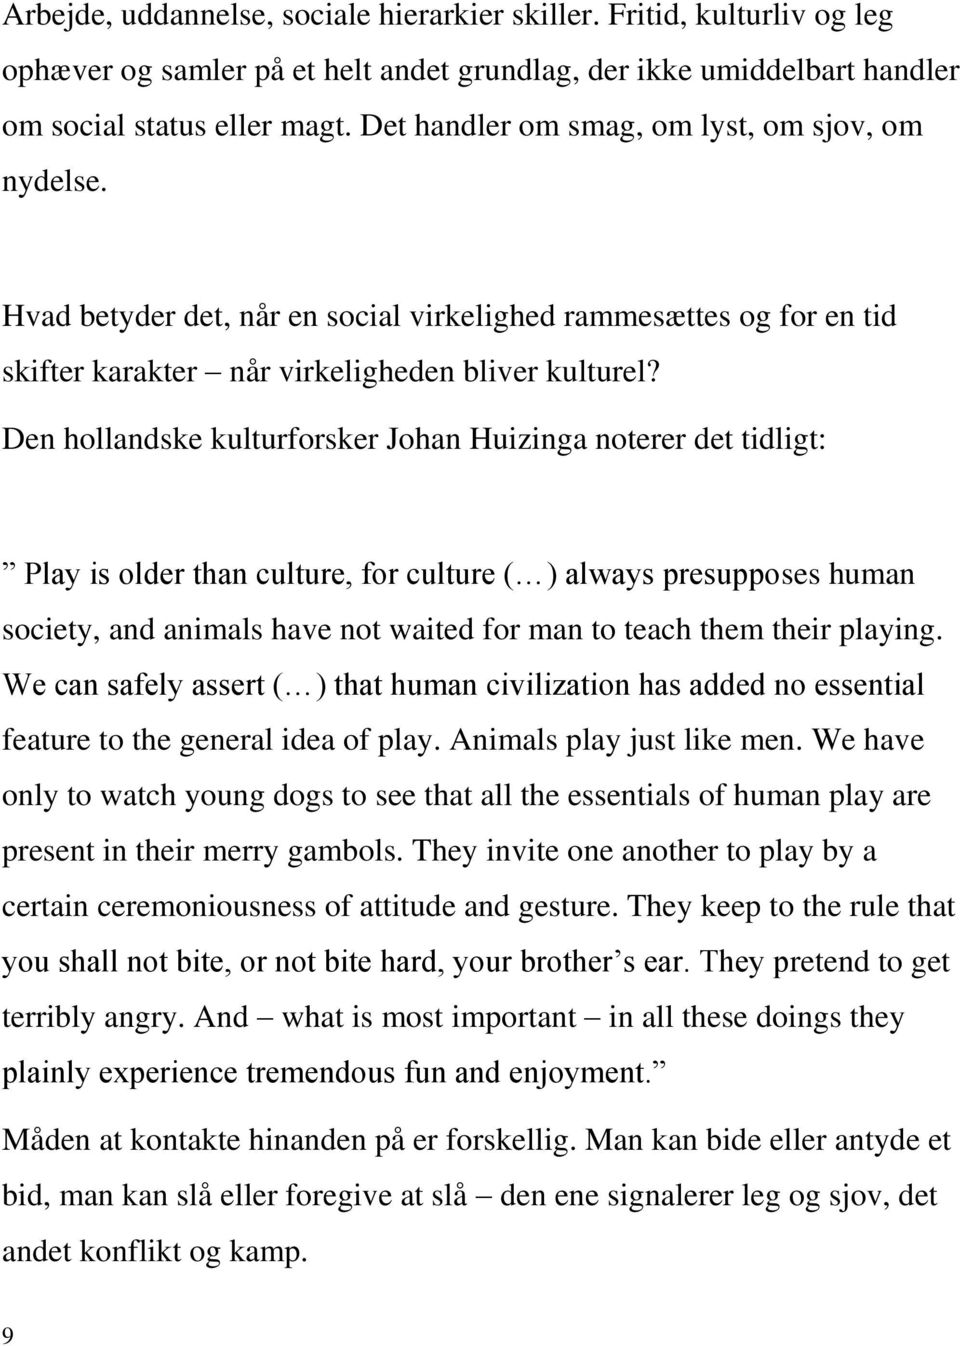 Den hollandske kulturforsker Johan Huizinga noterer det tidligt: Play is older than culture, for culture ( ) always presupposes human society, and animals have not waited for man to teach them their